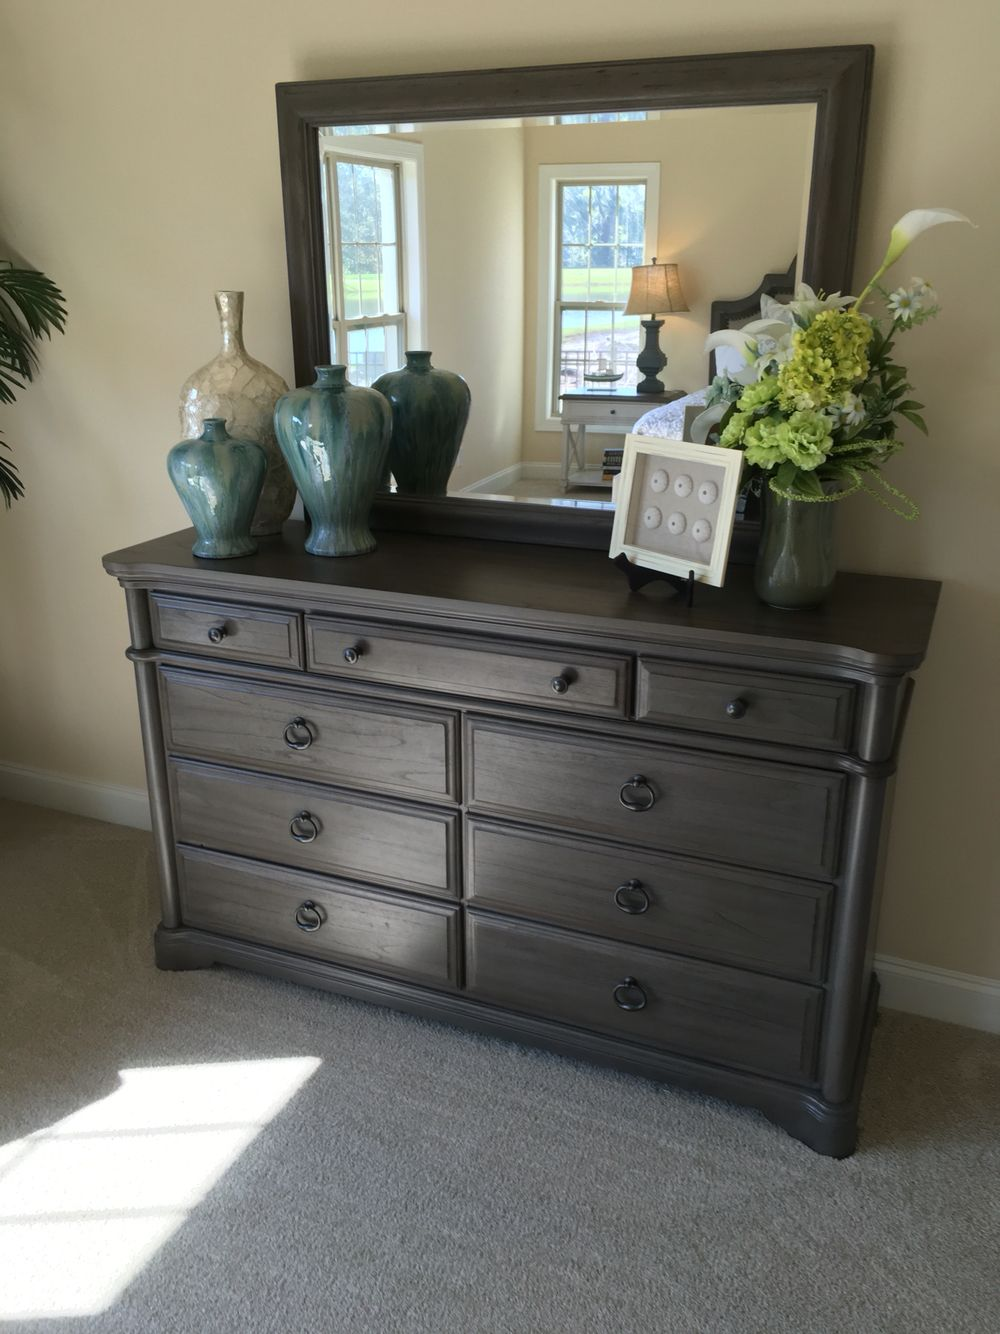 Superbe How To Stage A Dresser